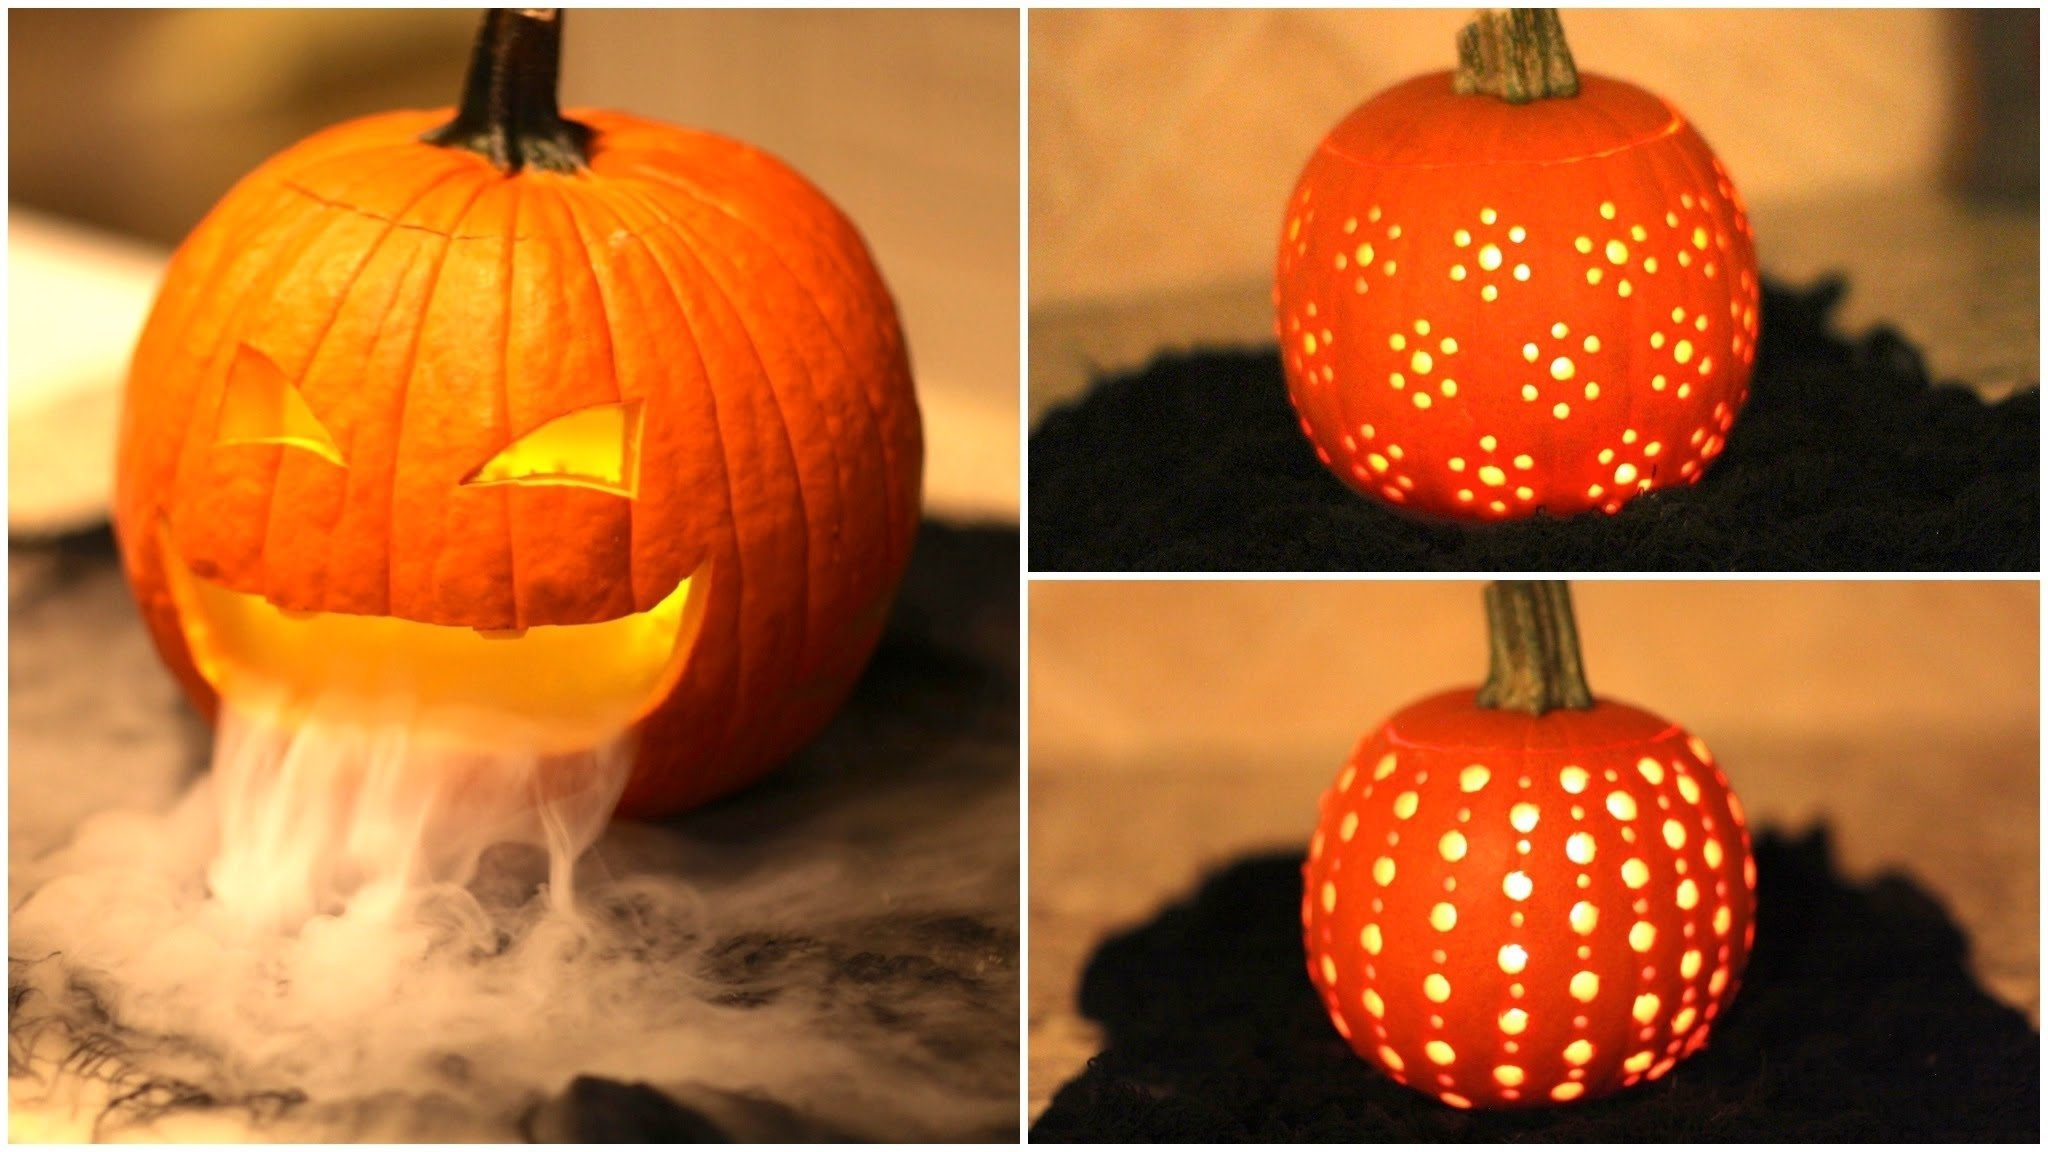 10 Famous Pumpkin Carving Ideas For Girls f09f8e83 diy pumpkin carvings cute halloween ideas f09f8e83 youtube 2020